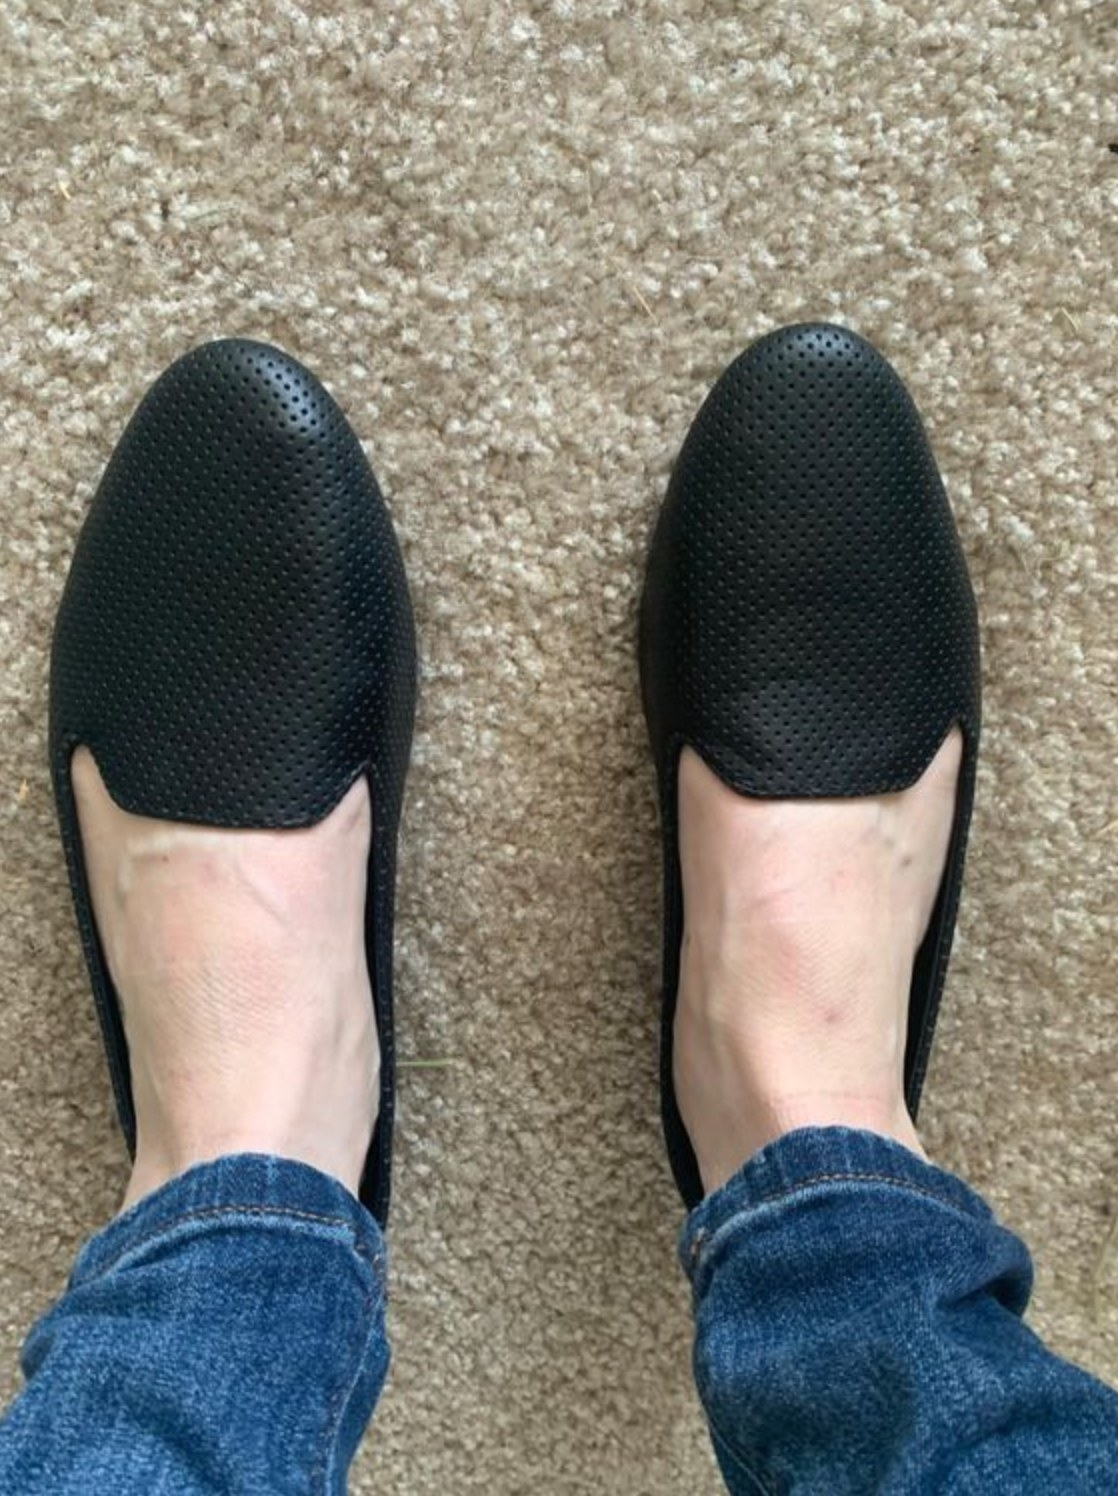 A reviewer wearing the perforated loafers in black